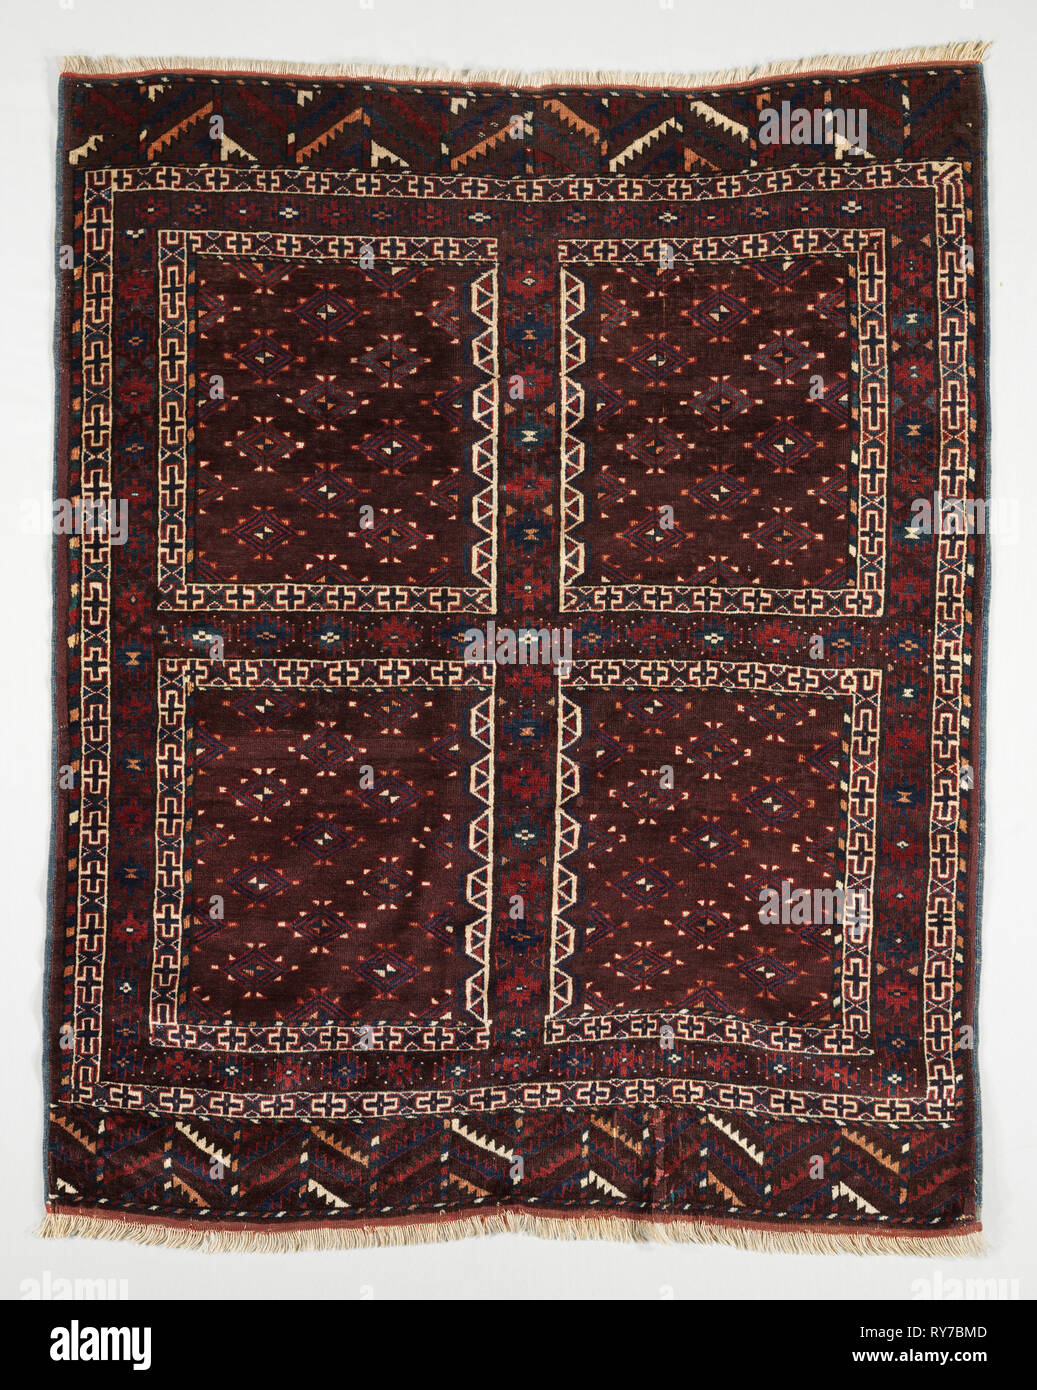 Door Rug (Ensi), c. 1900. Turkmenistan, Yomud, 19th century. Knotted pile, asymmetrical knot, 117 knots psi; wool; overall: 183 x 142 cm (72 1/16 x 55 7/8 in Stock Photo